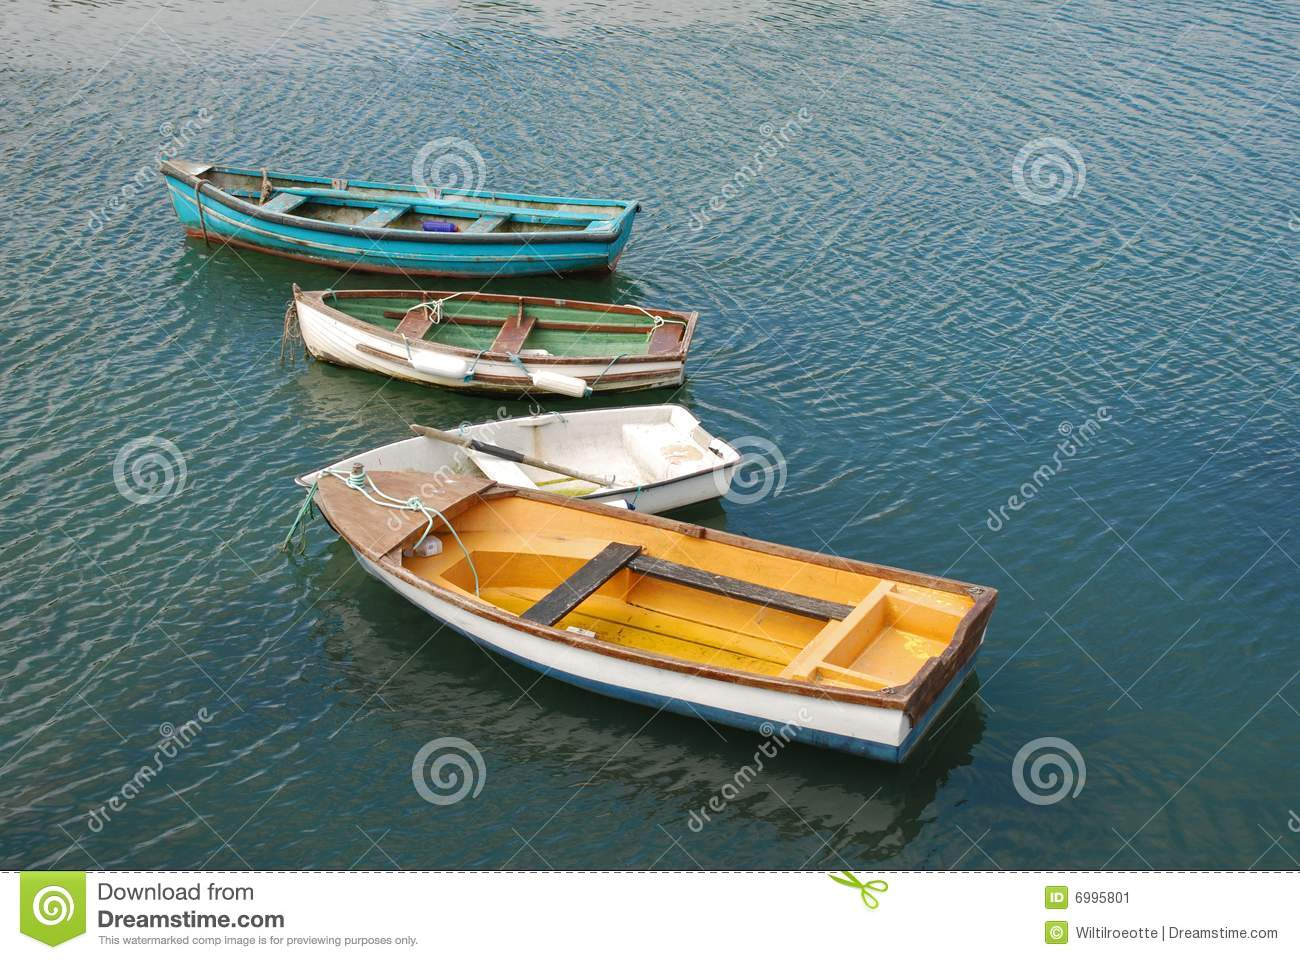 Little colorful boats